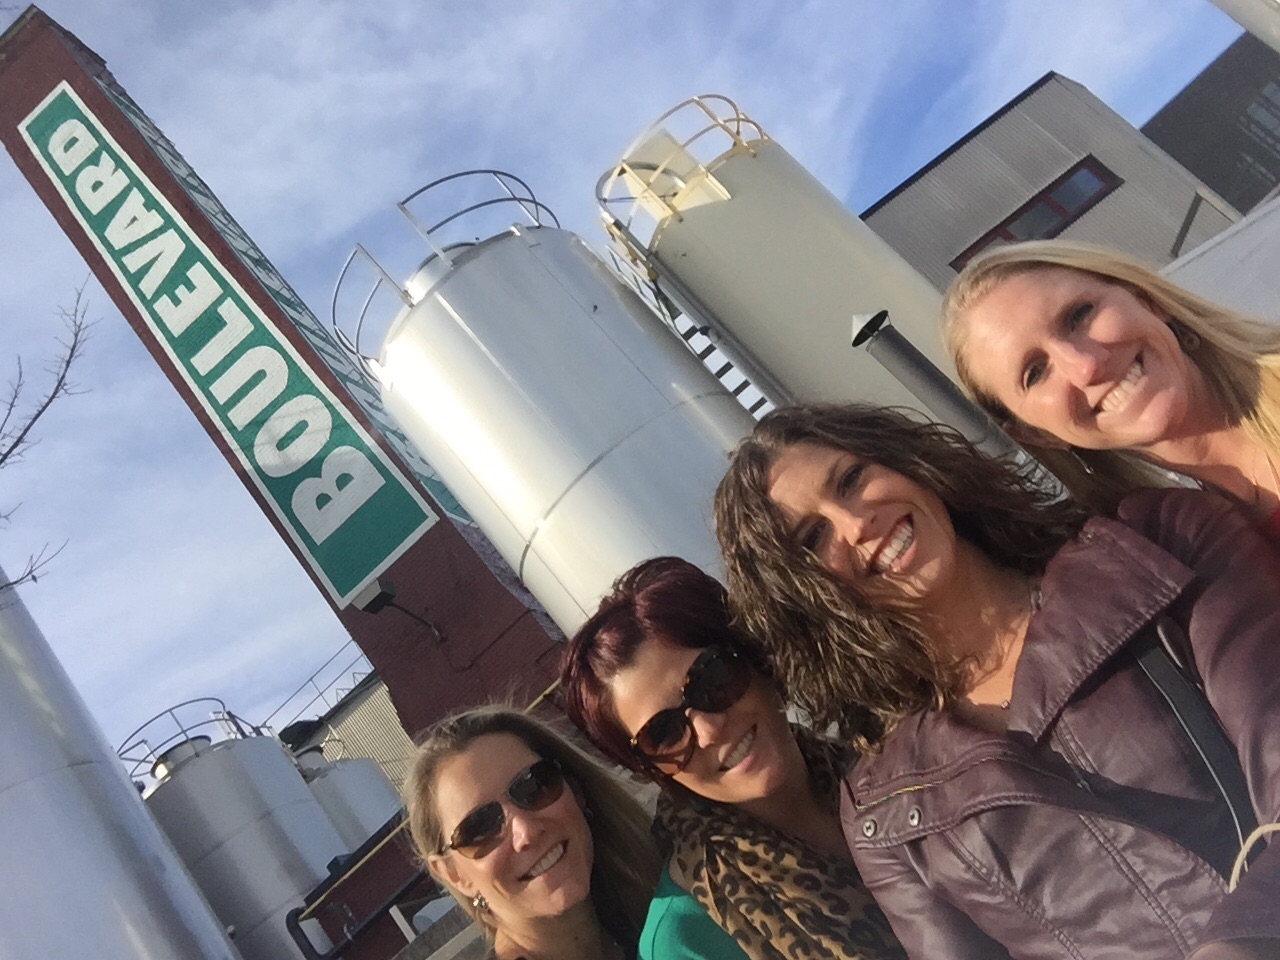 Outside the Boulevard Brewery